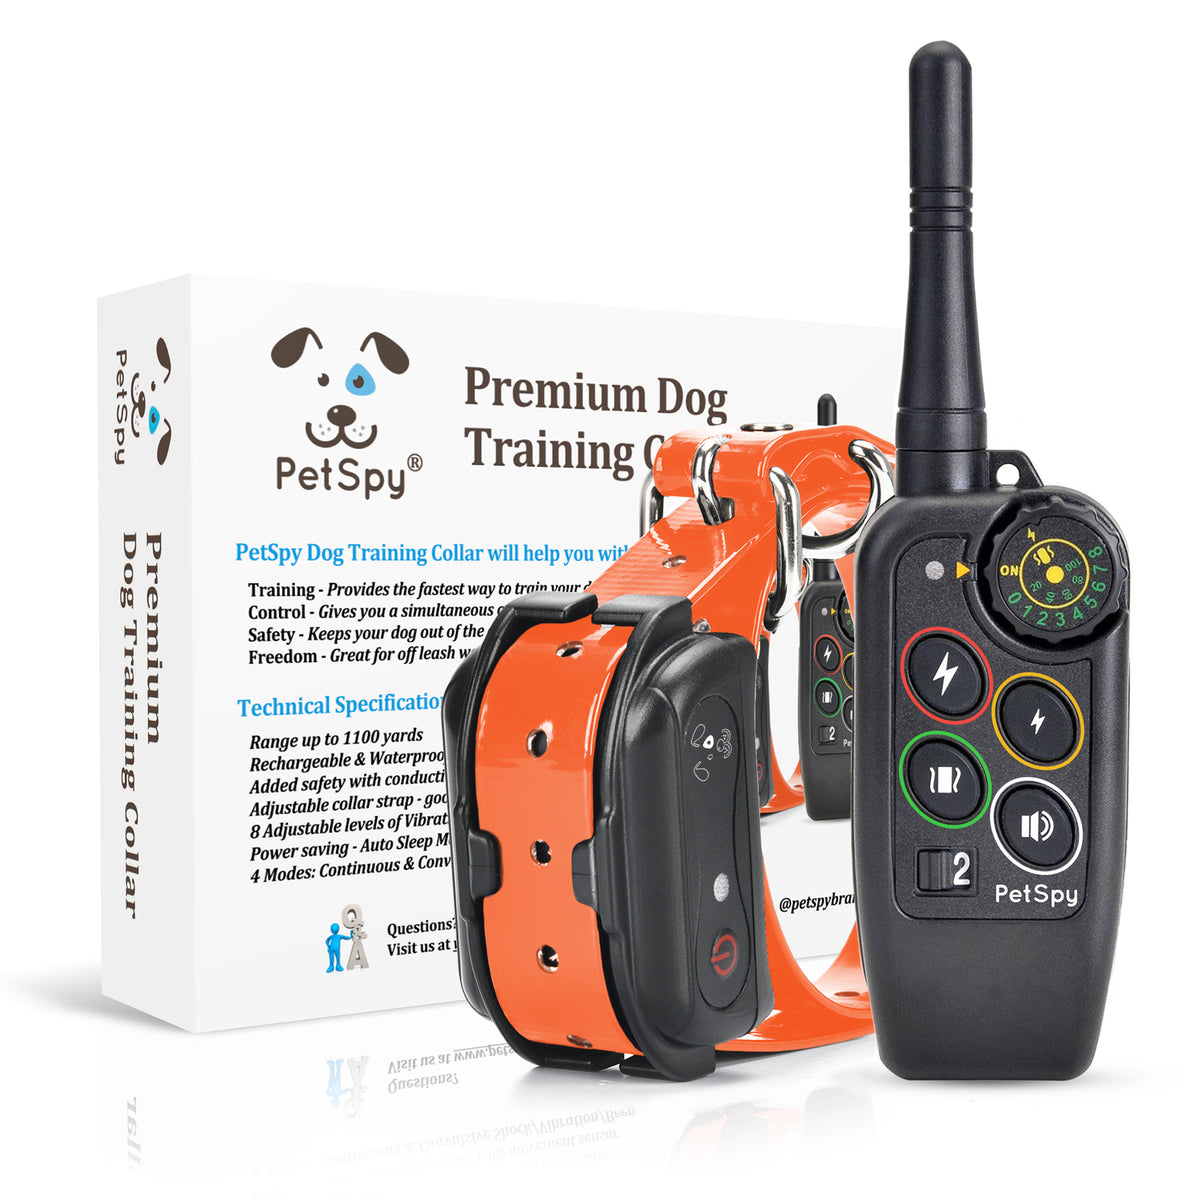 PetSpy M686 e-collar with box in the background